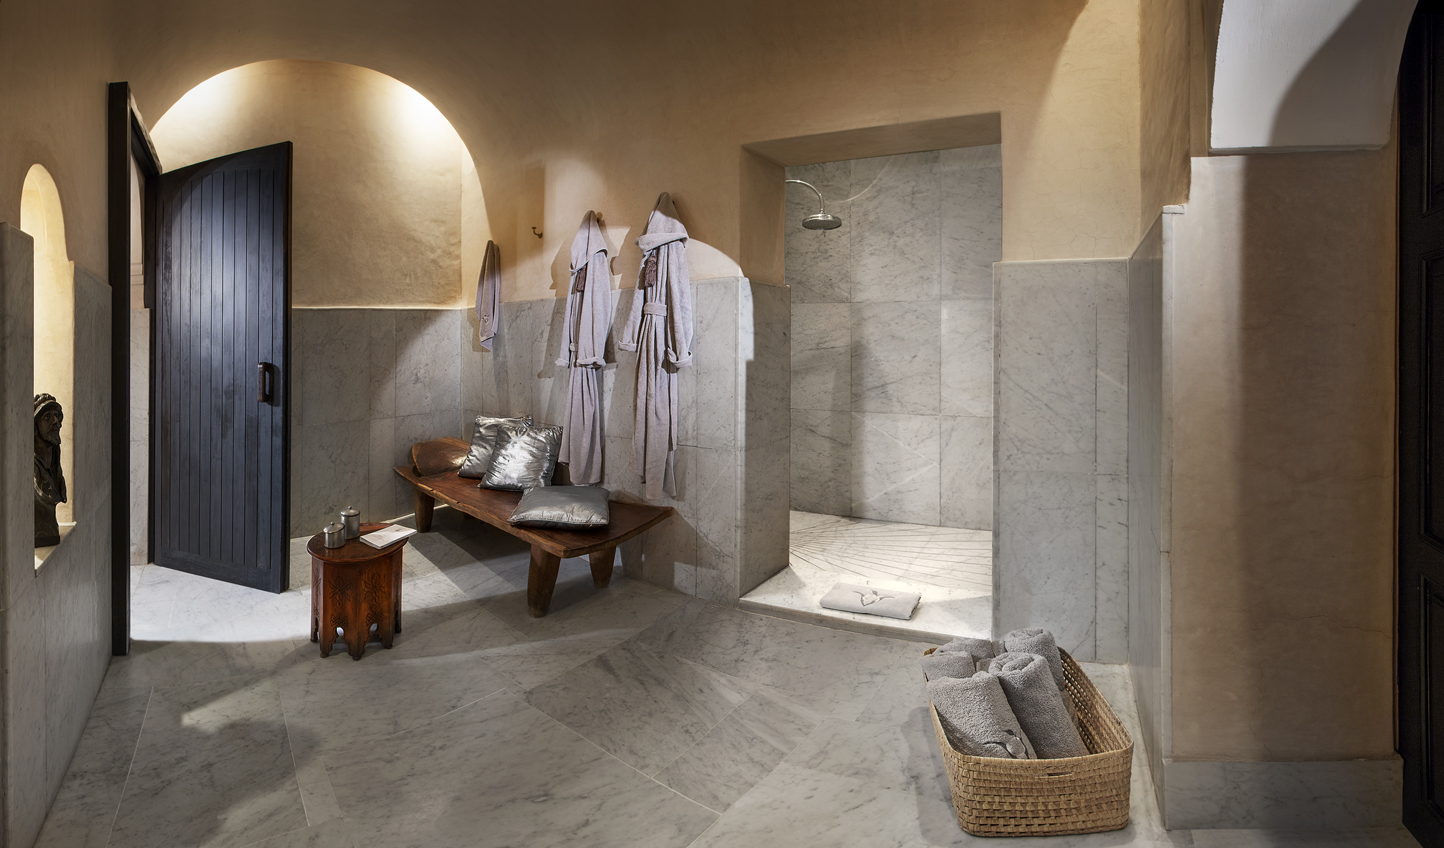 A world of relaxation awaits at Nuxe Spa